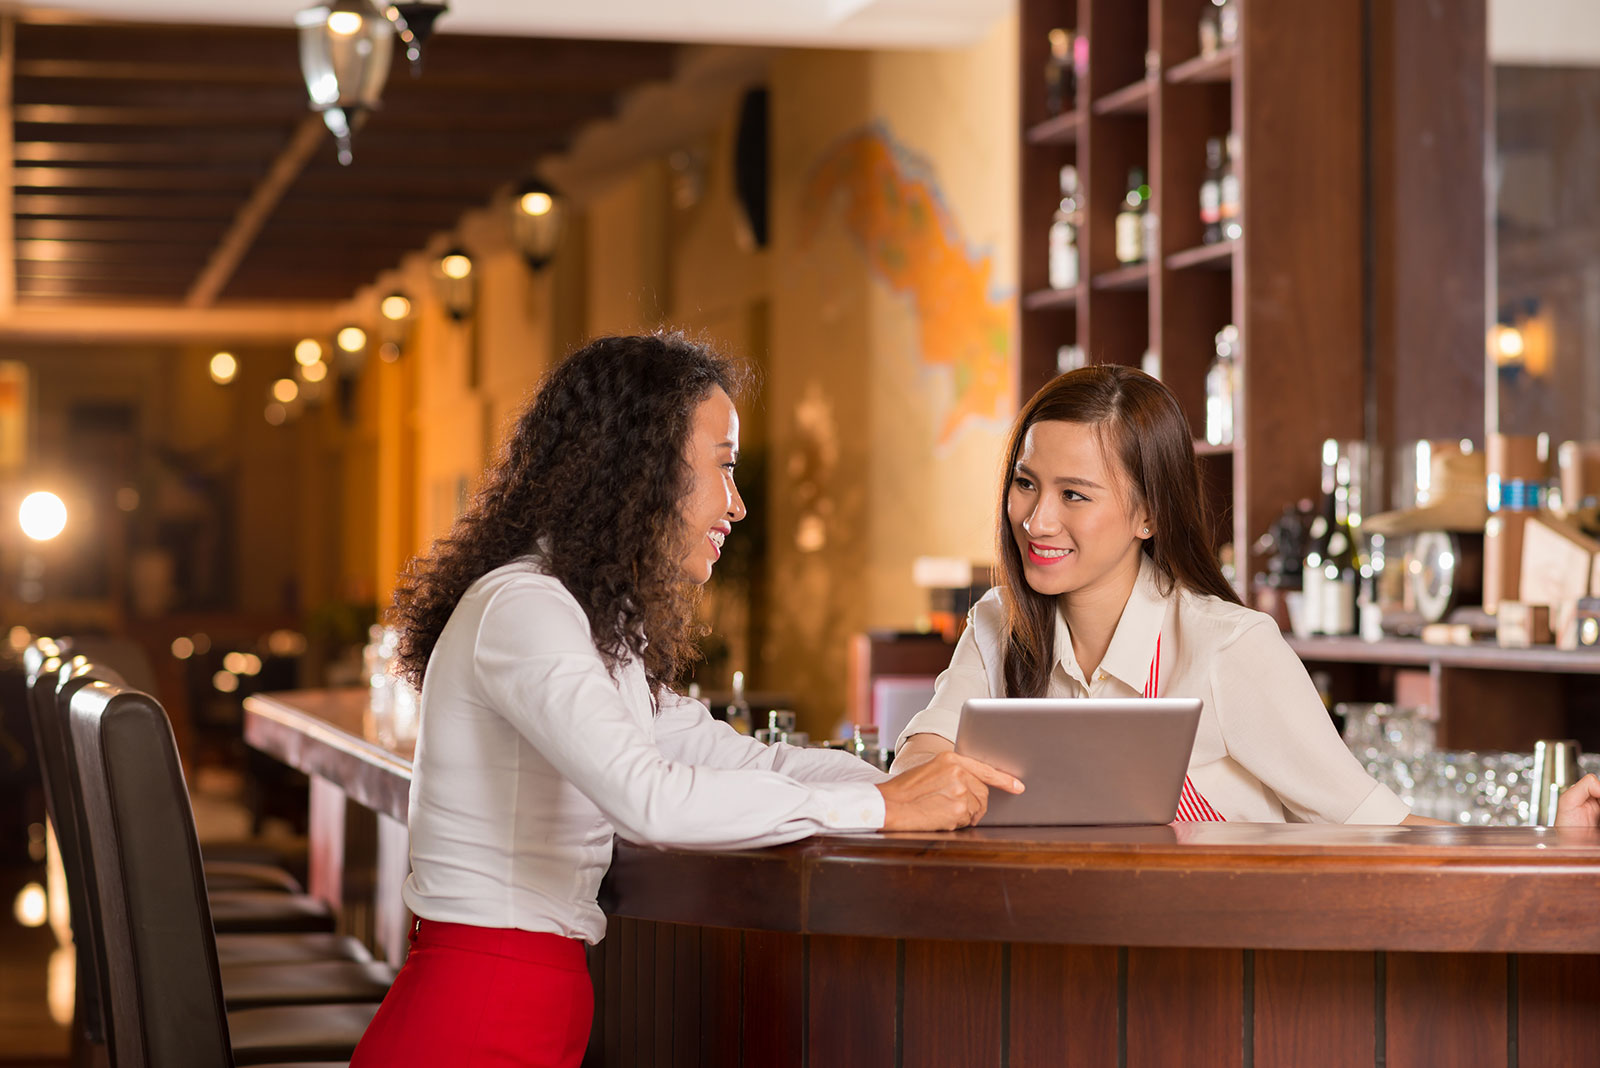 Female restaurant manager showing tablet device screen to waitress standing behind restaurant bar